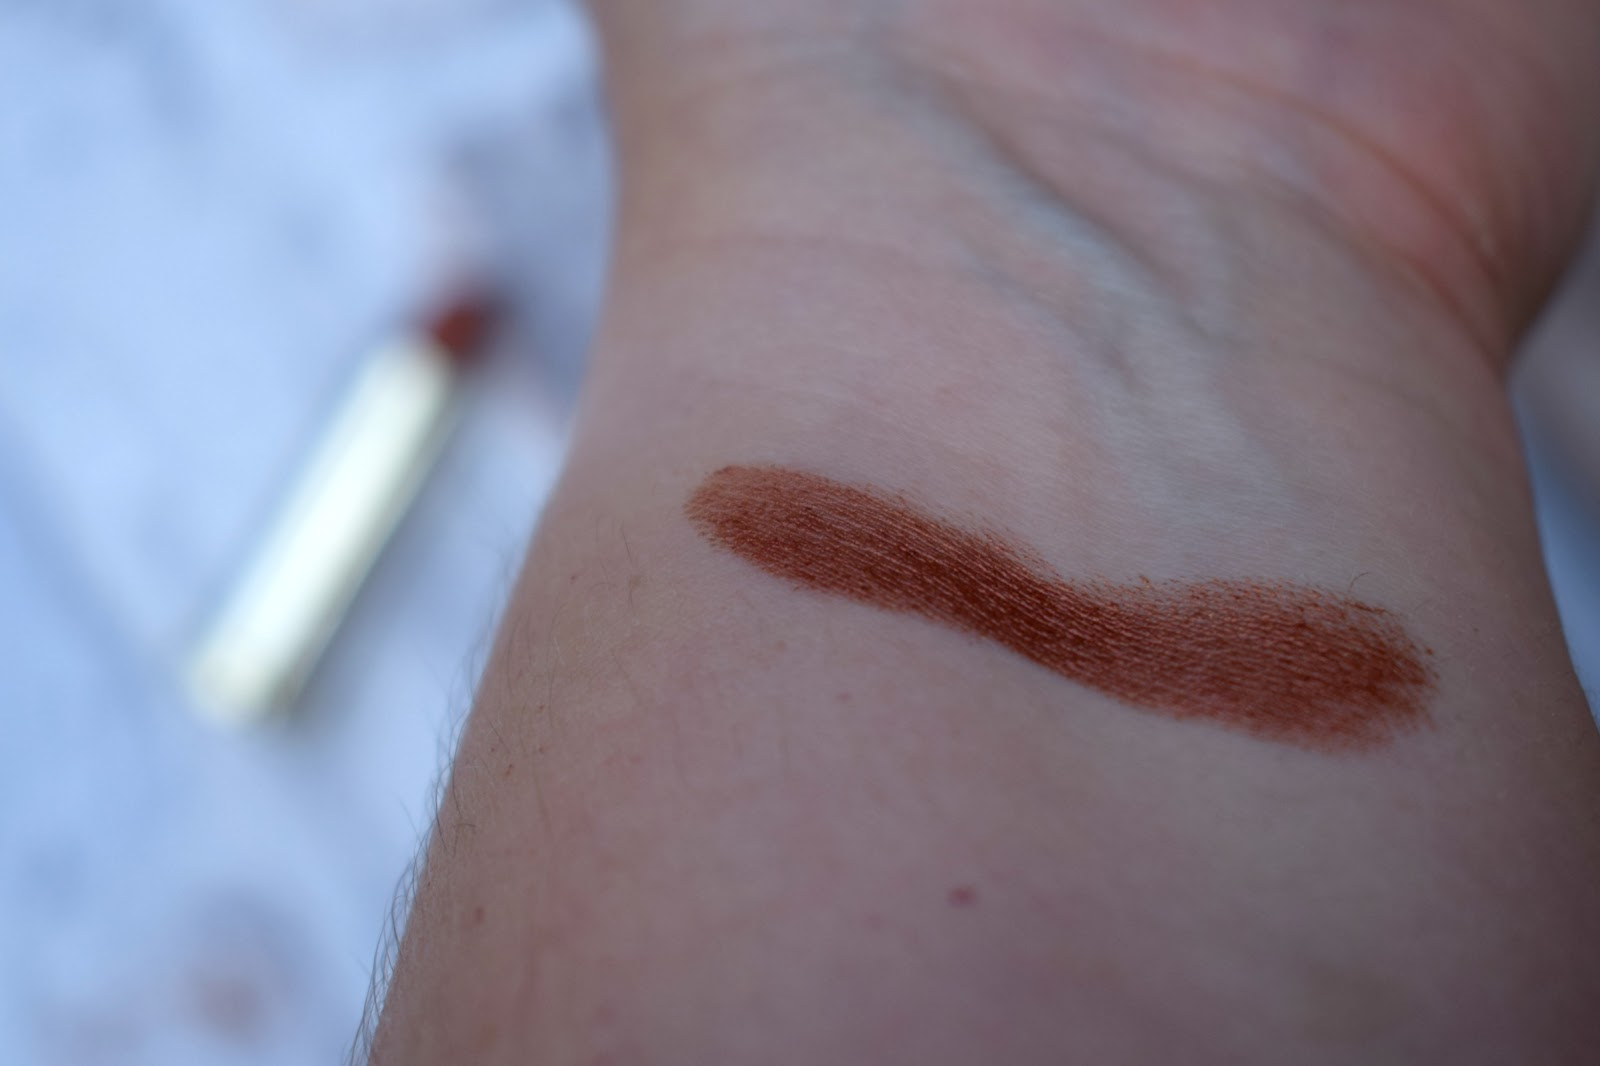 Urban Decay's Naked heat vice lipstick in scorched